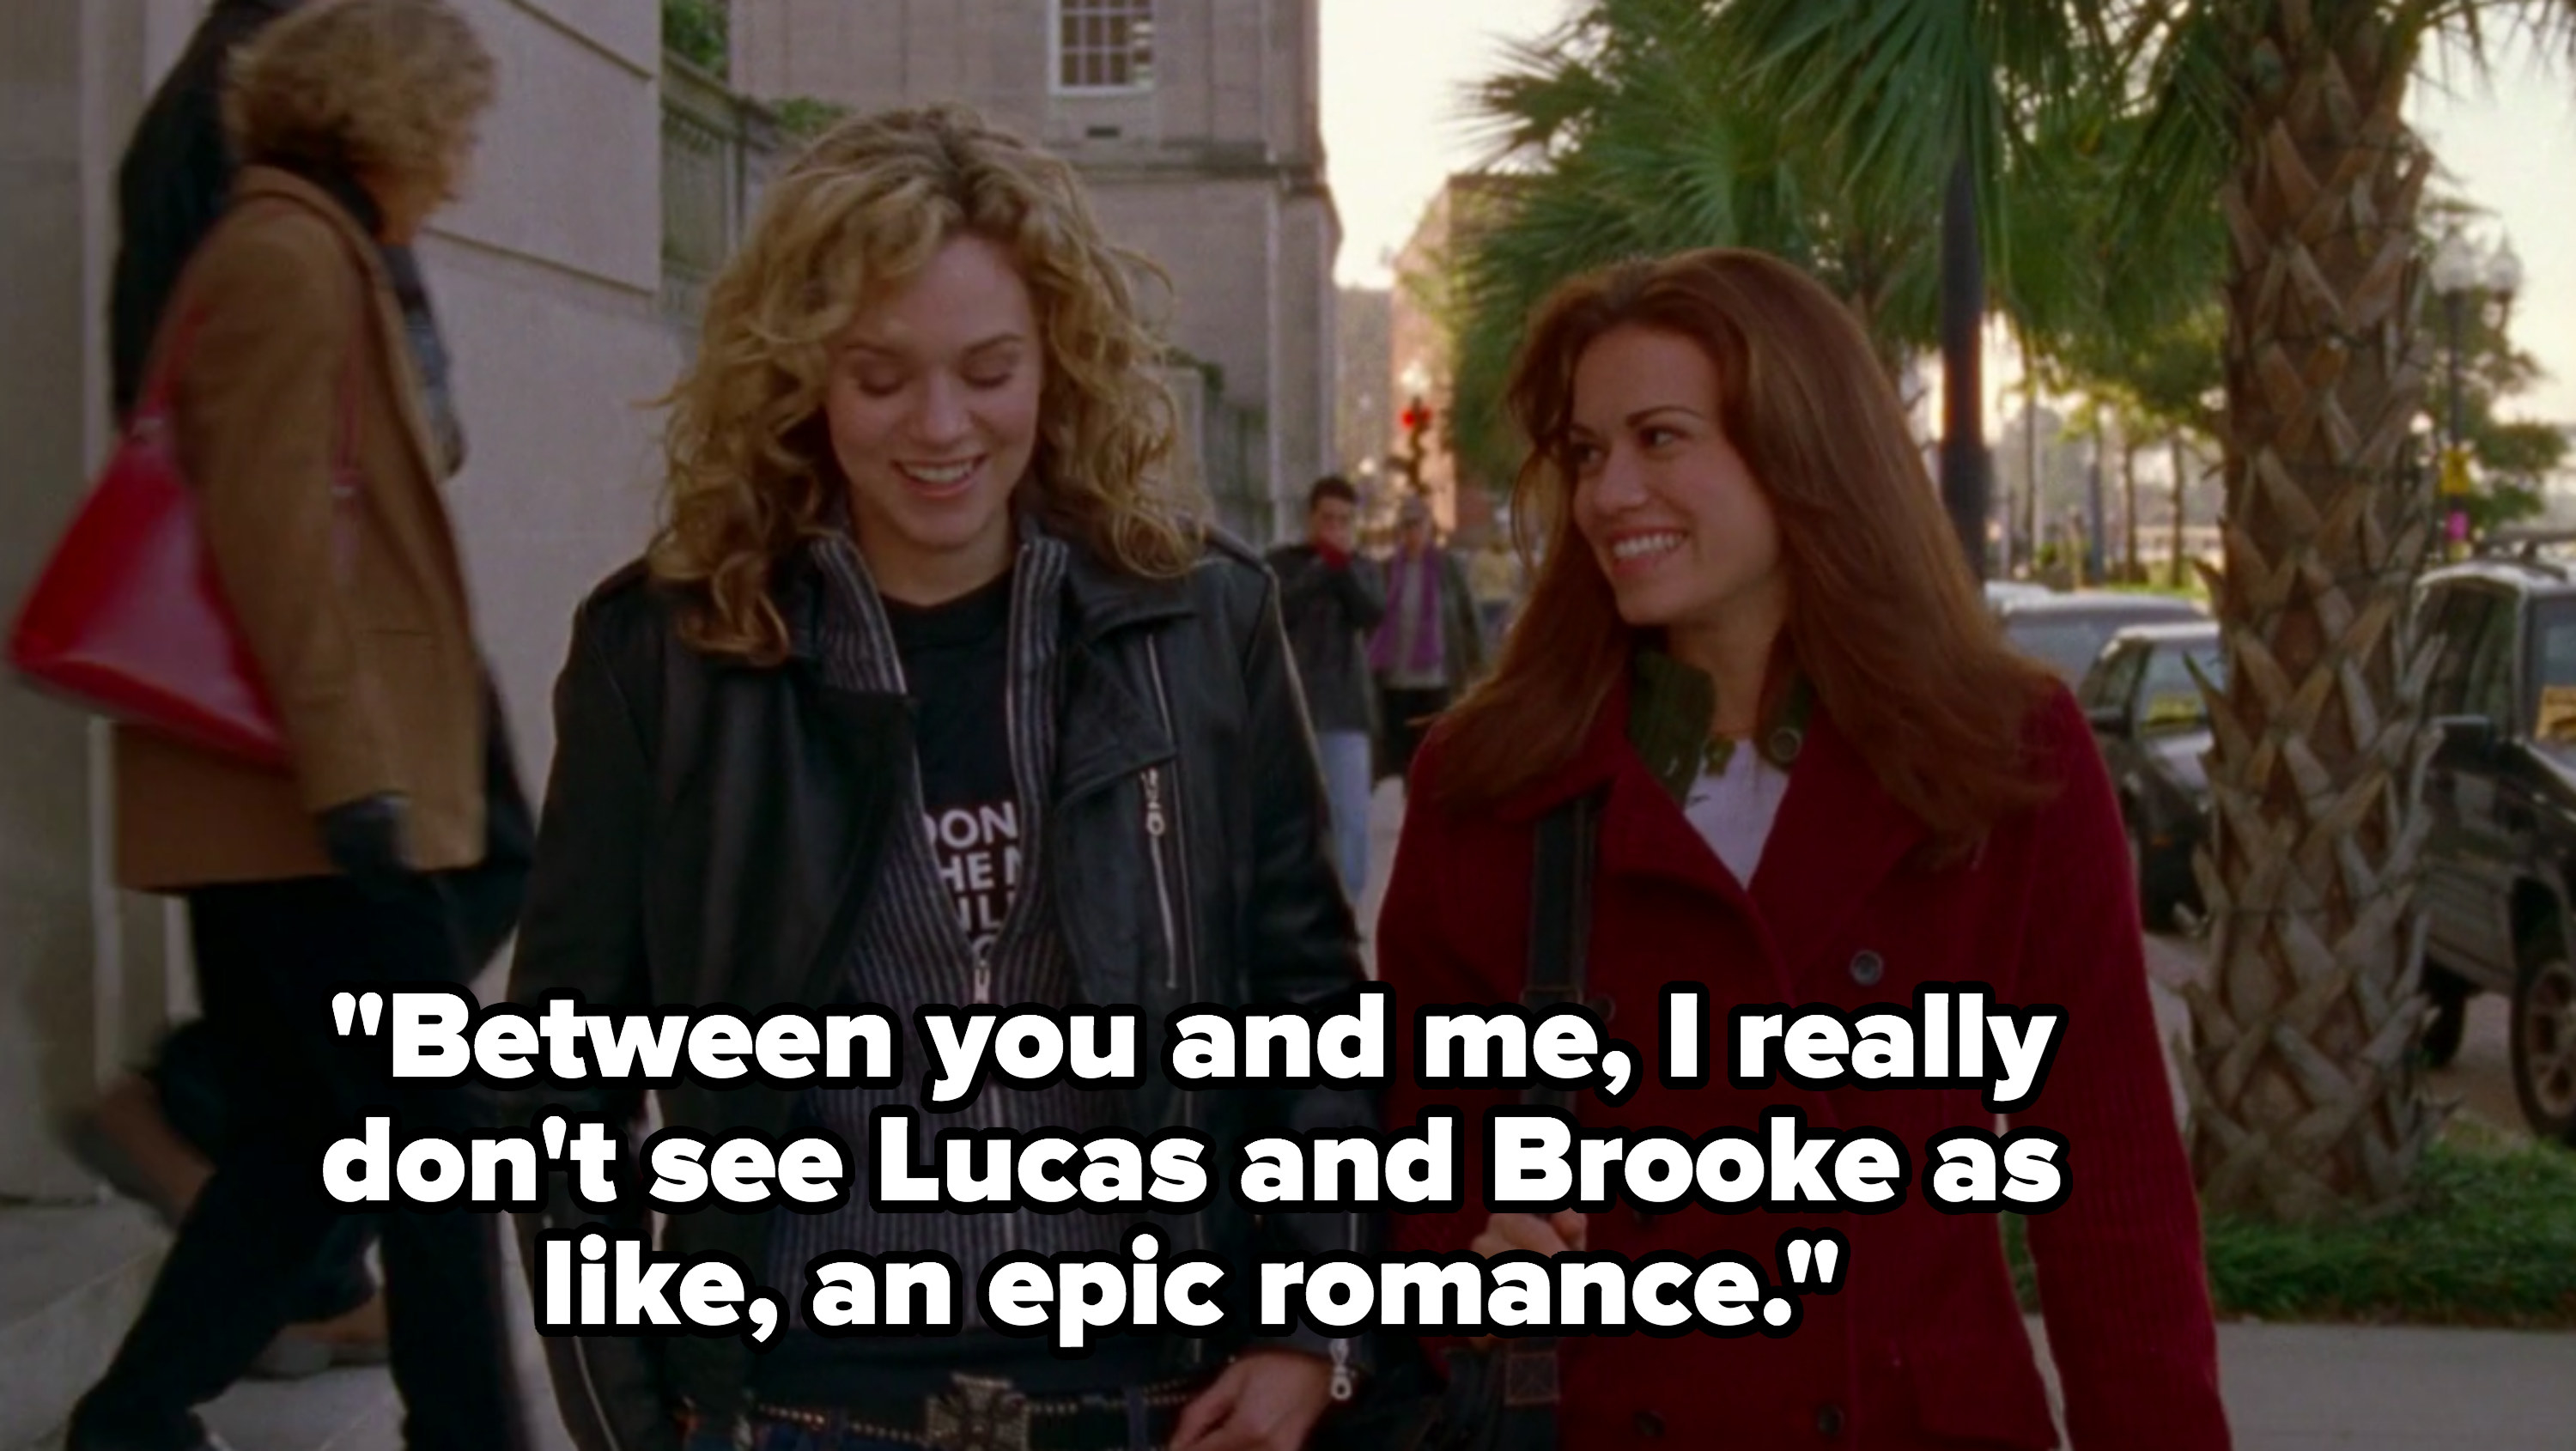 Haley says she doesn't see Lucas and Brooke being an epic romance